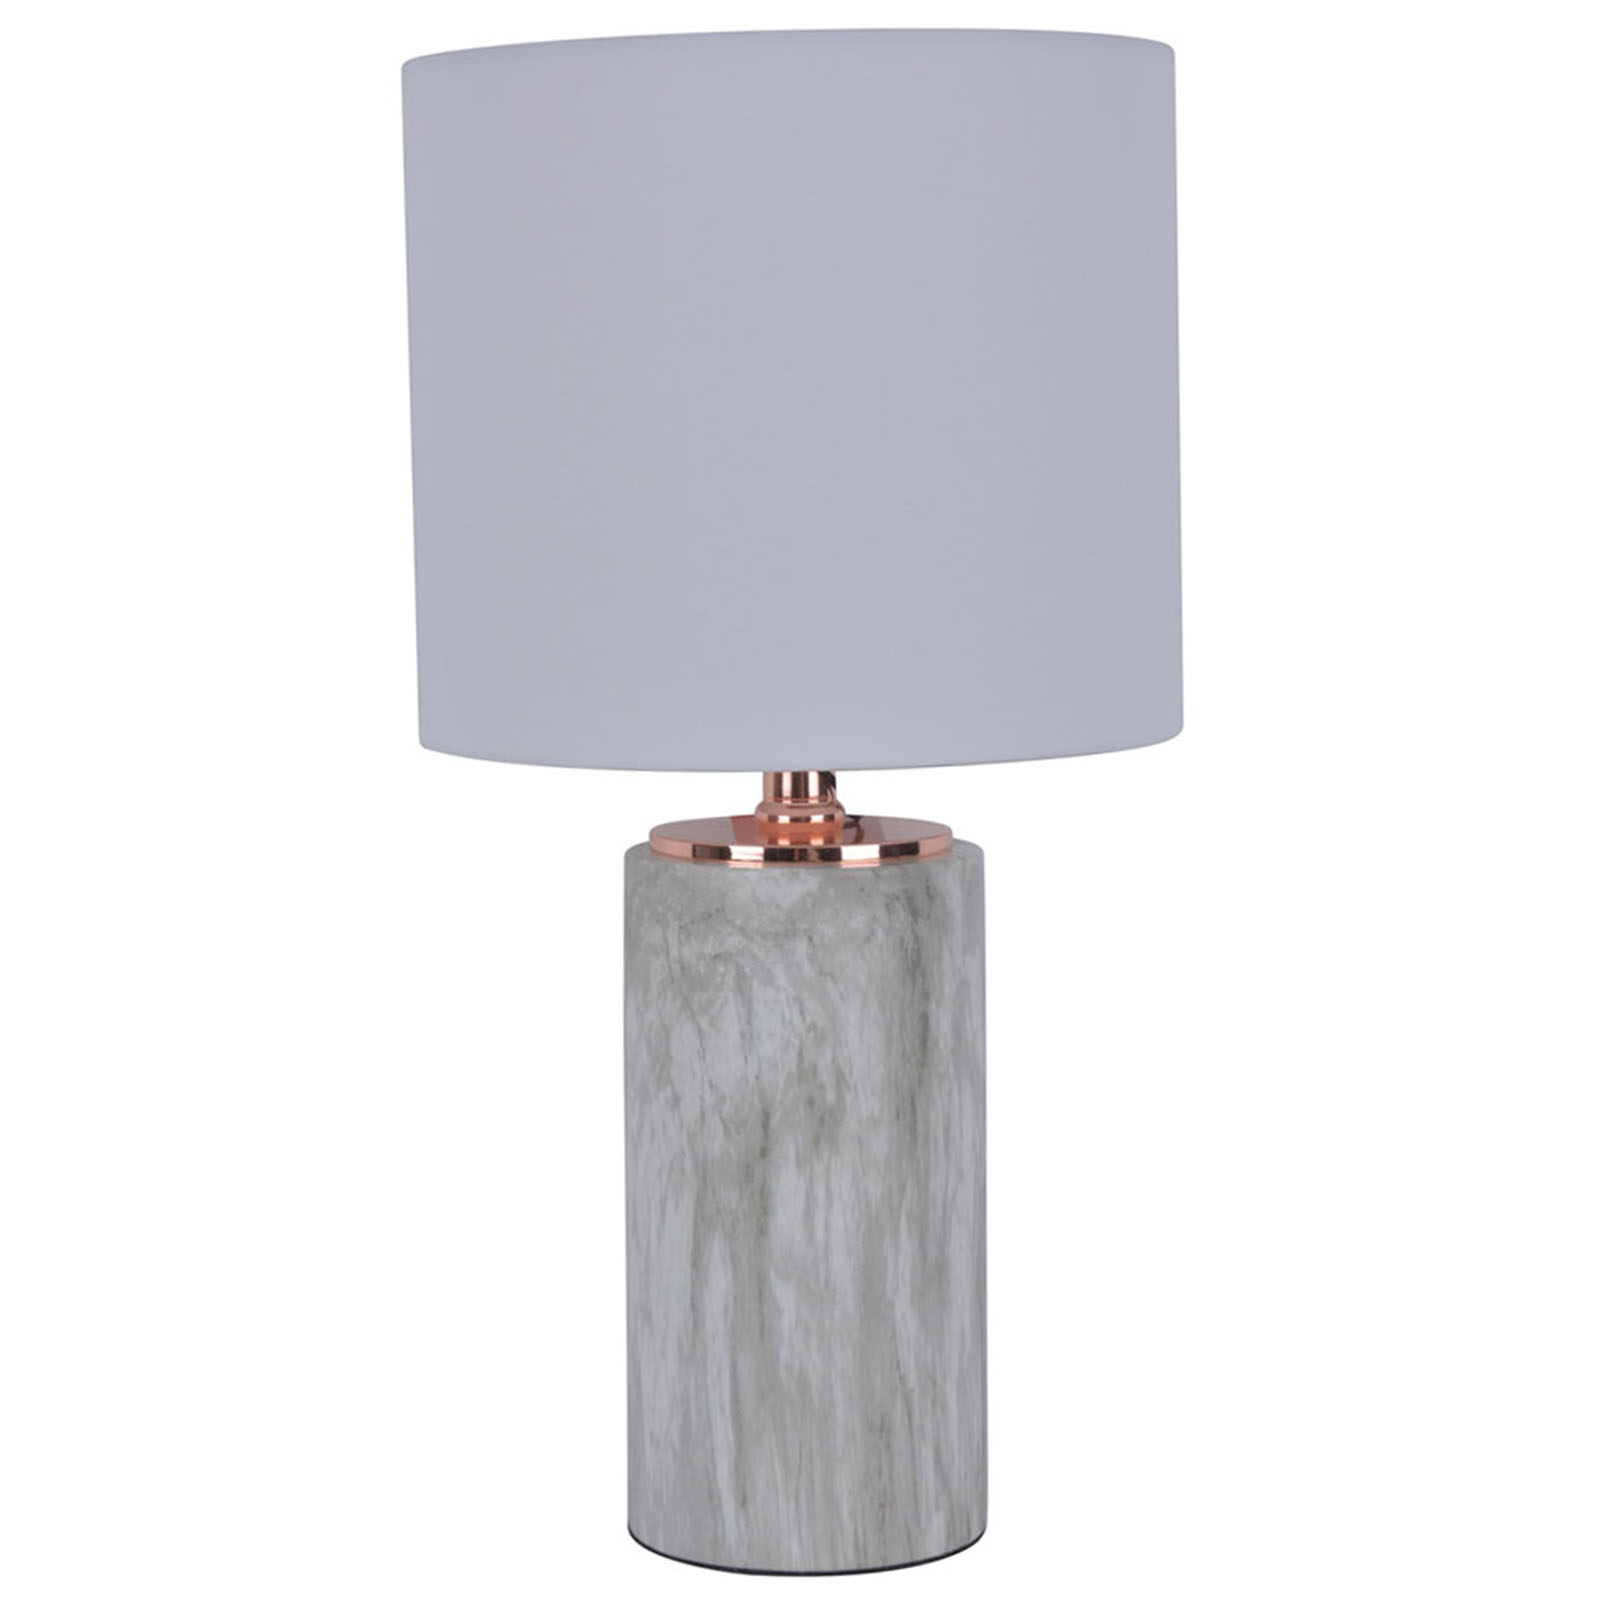 hollywood rose faux marble table lamp prod room essentials white accent waterproof cover outdoor knotty pine bar stools barn door kitchen cabinets round quilted topper patterns